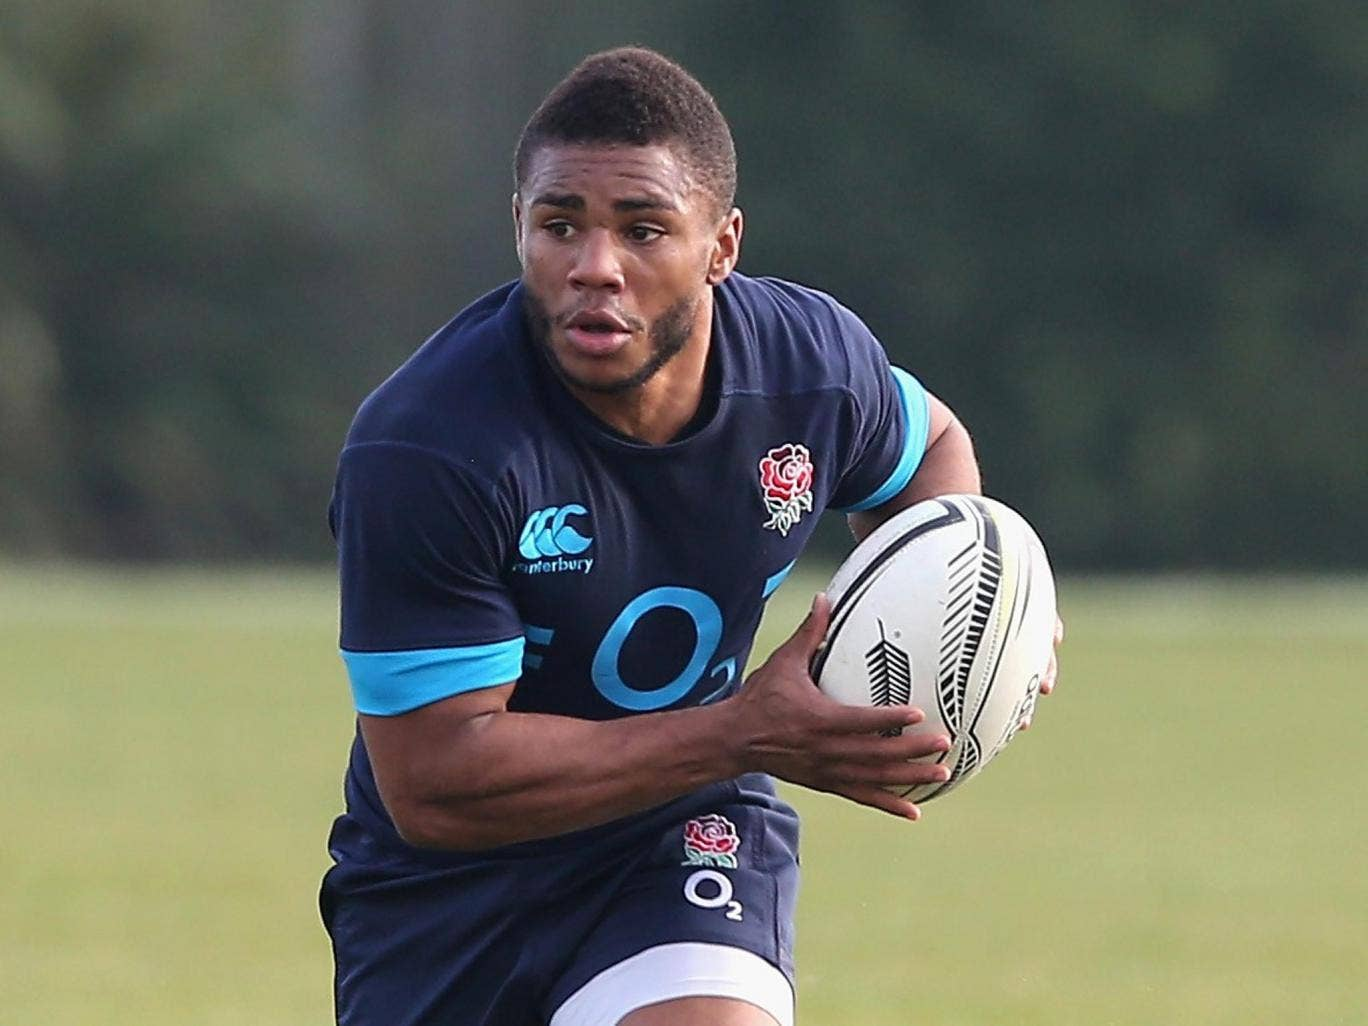 Kyle Eastmond has a big chance to strengthen his place in the England Test squad